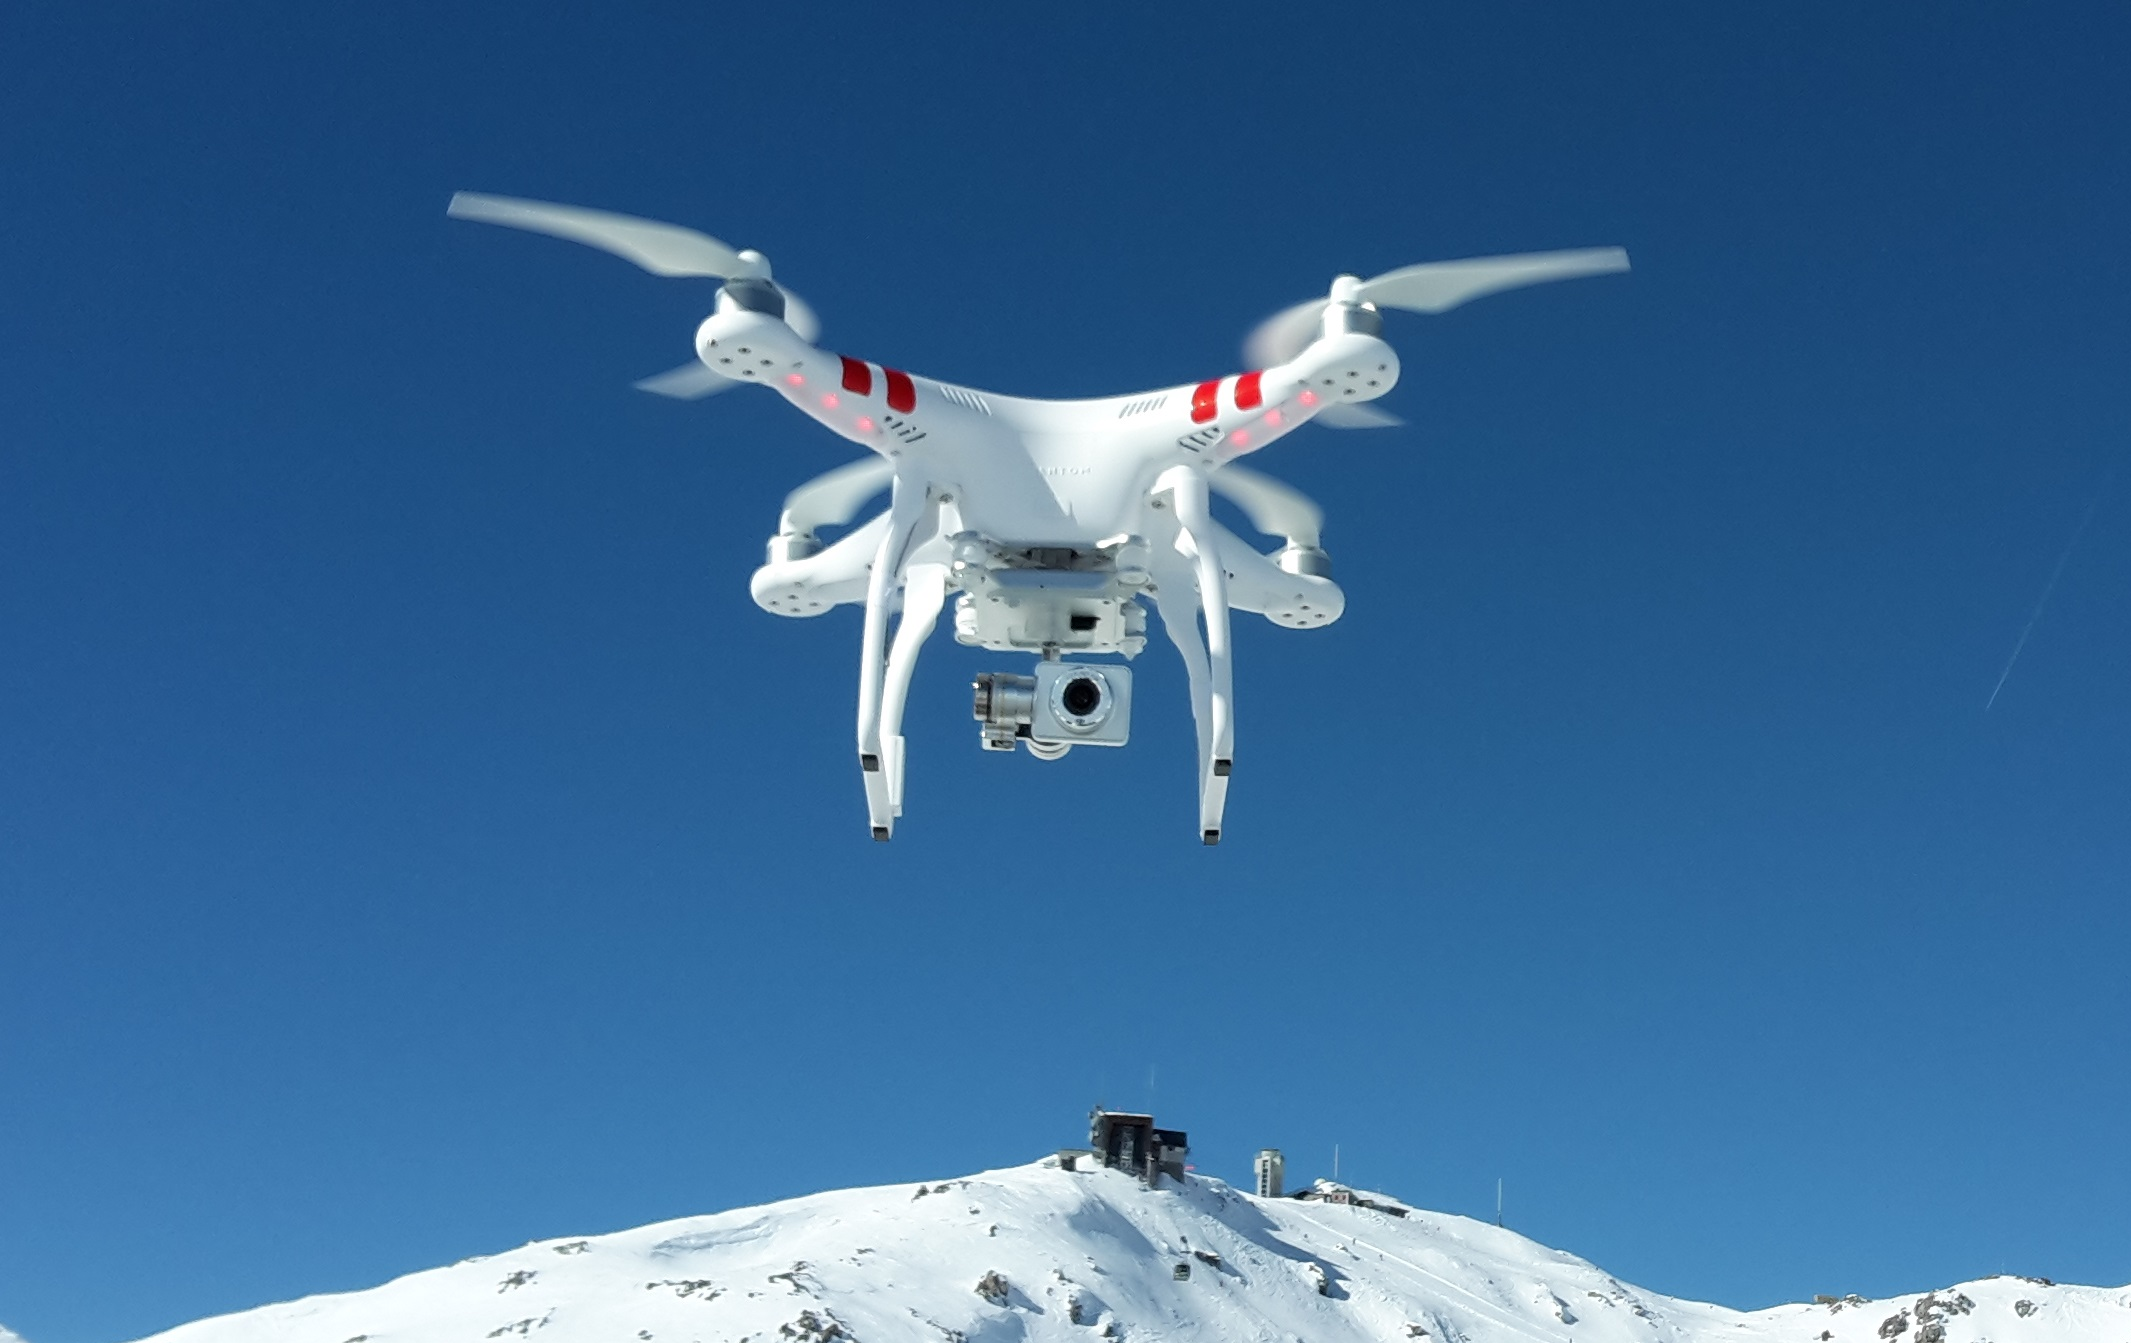 DJI Phantom 2 Vision+ V3 Hovering Over Weissfluhjoch